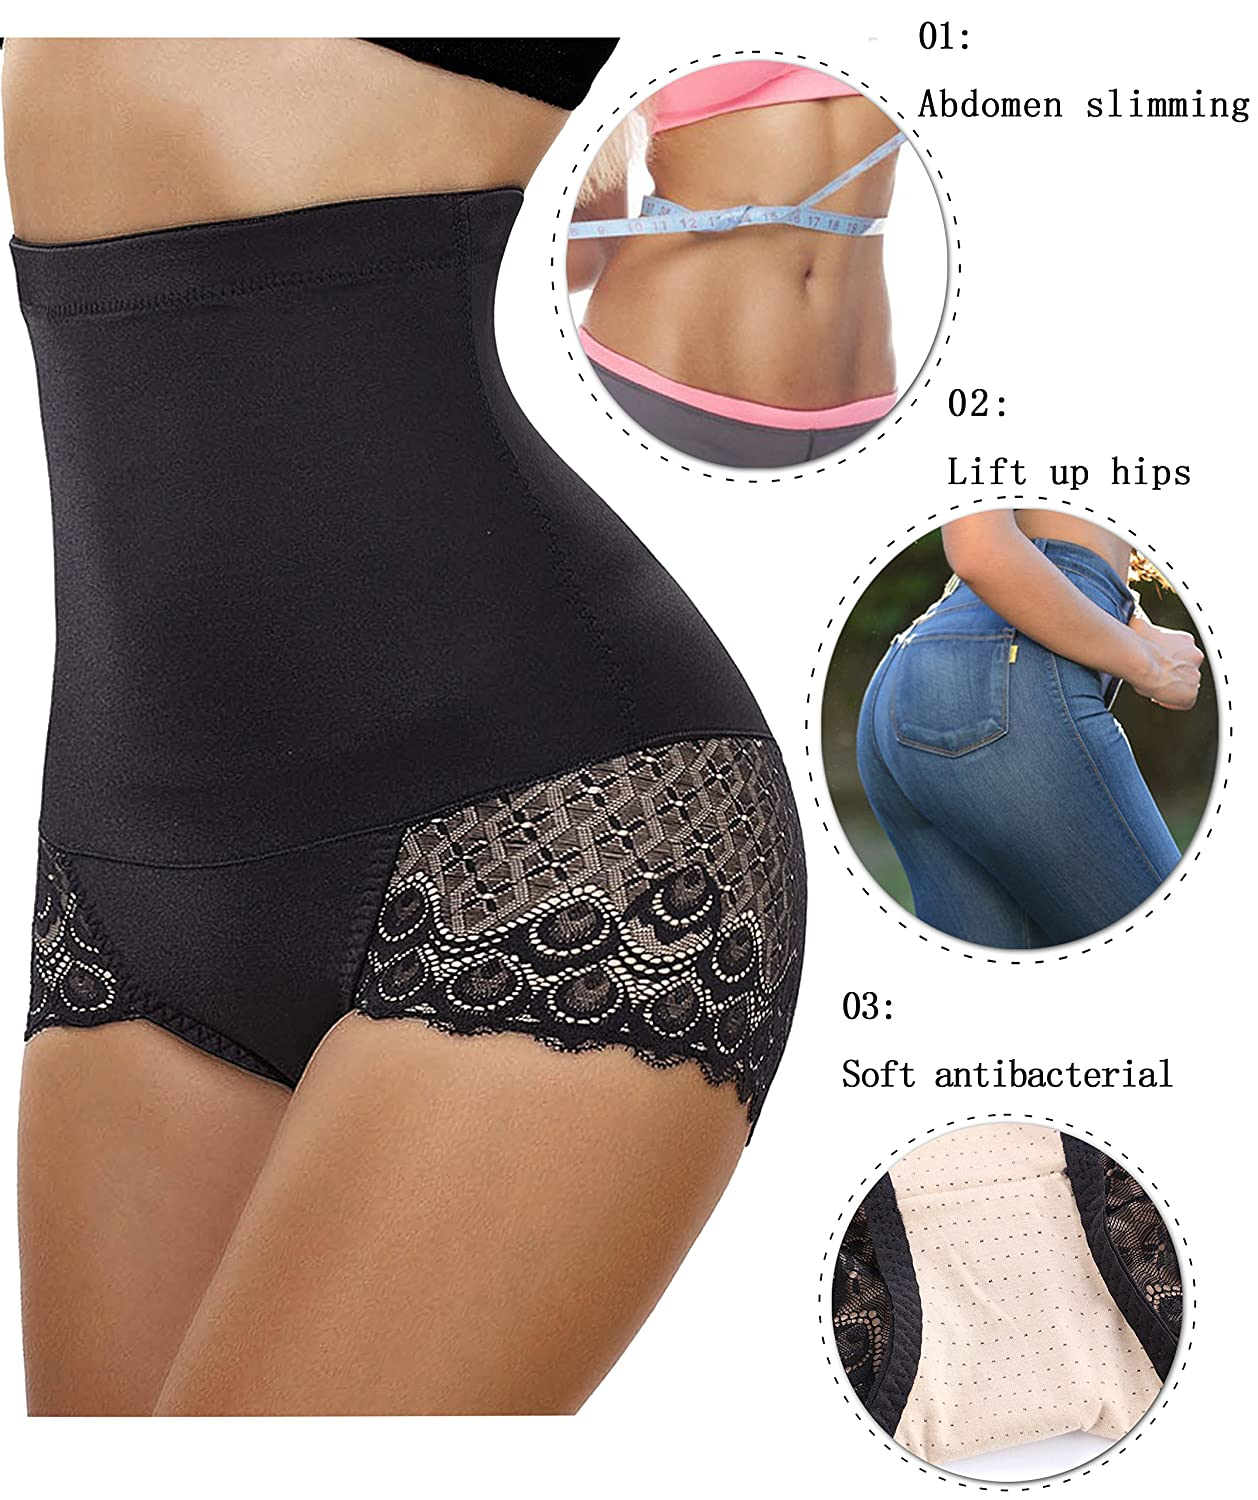 Gotoly Invisable Strapless Body Shaper High Waist Tummy Control Butt Lifter Panty Slim